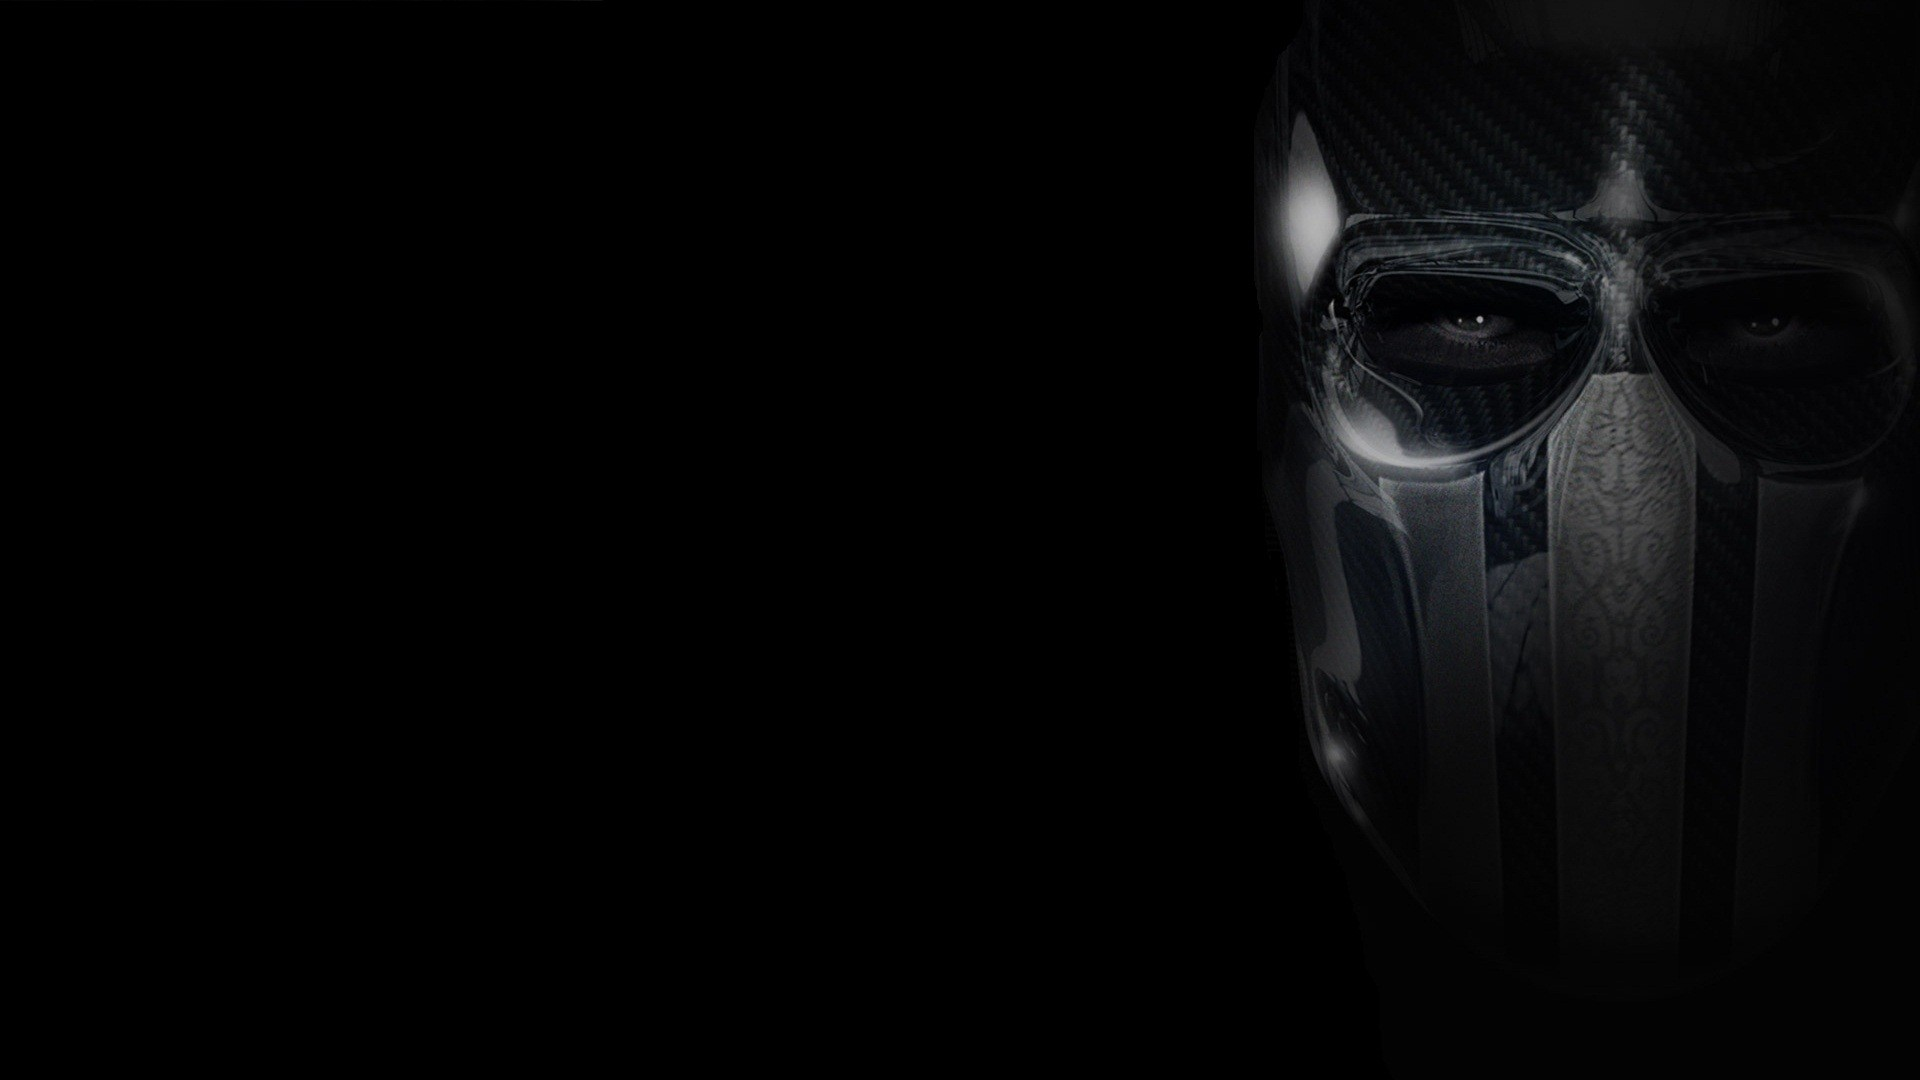 Army of Two Computer Wallpapers, Desktop Backgrounds ... |Army Of Two Wallpaper 1920x1080